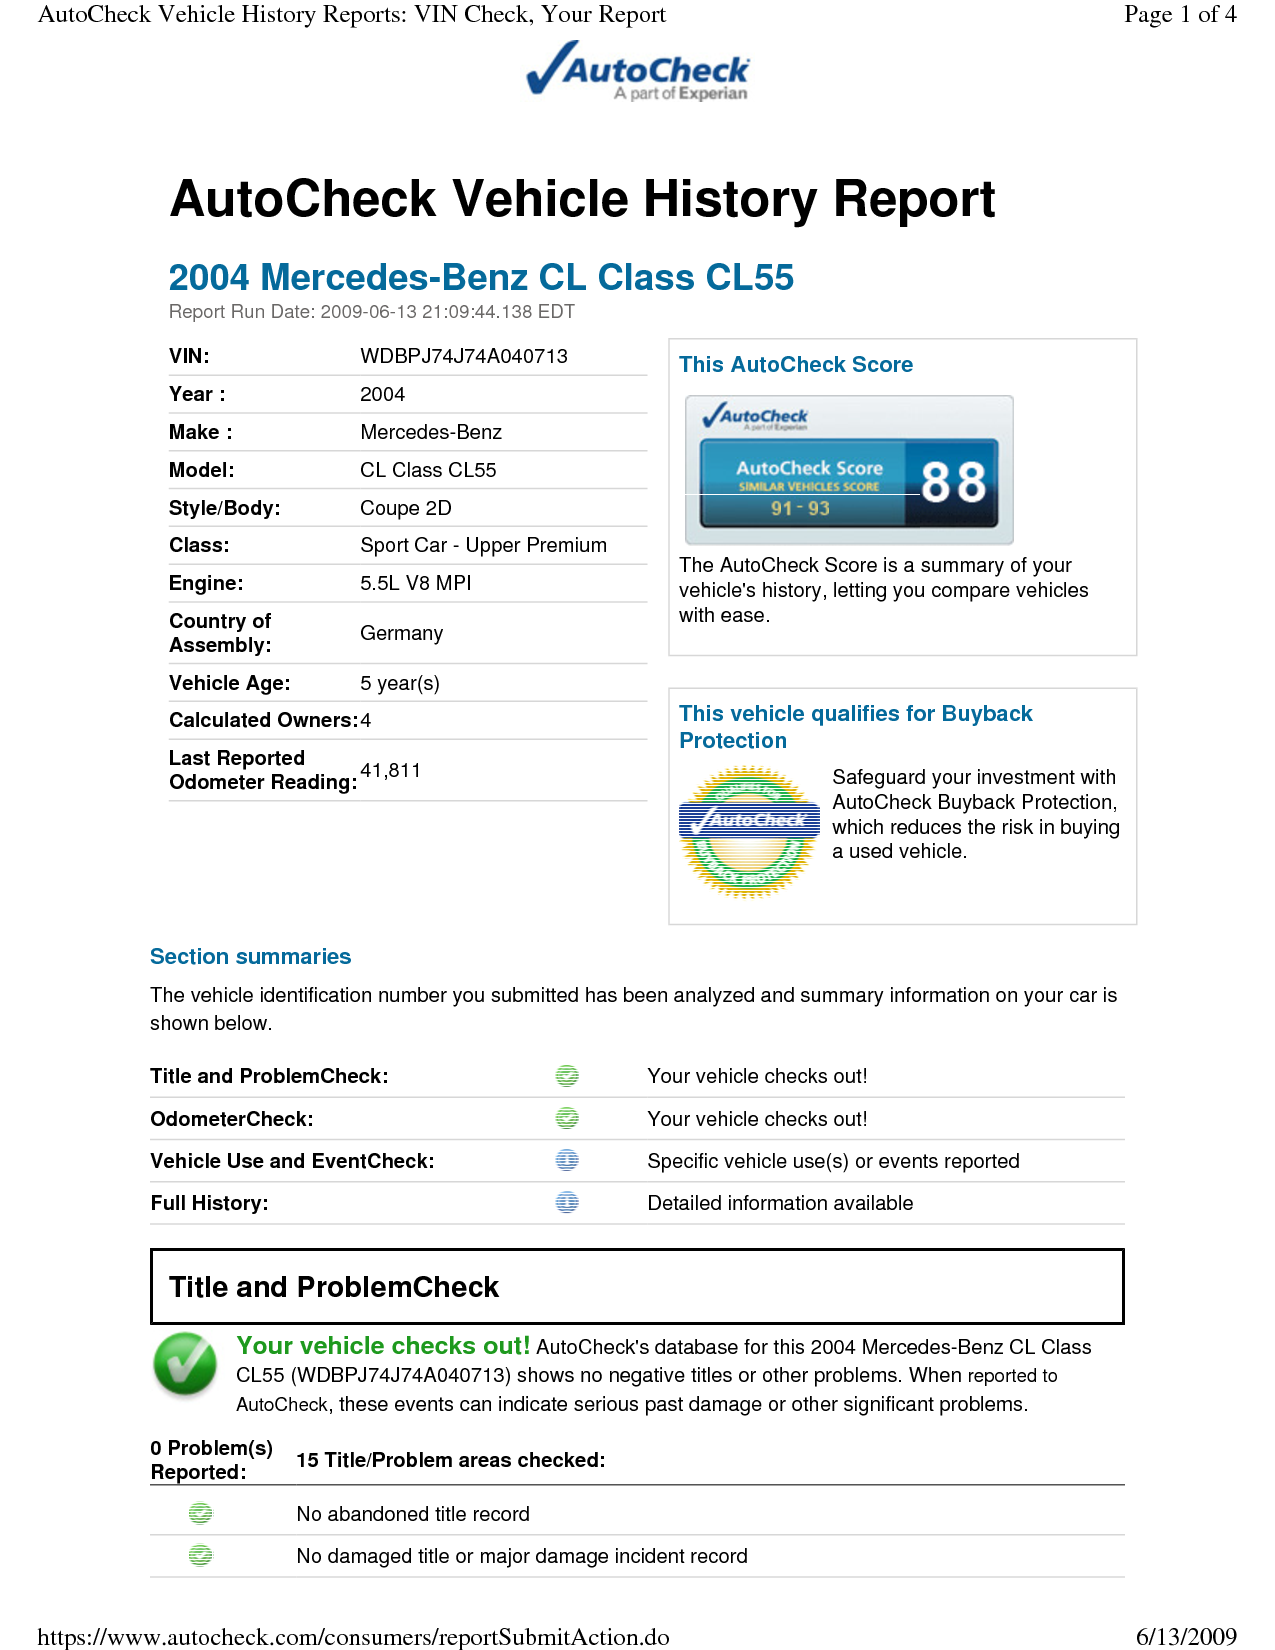 carfax vs autocheck 3 differences you must know